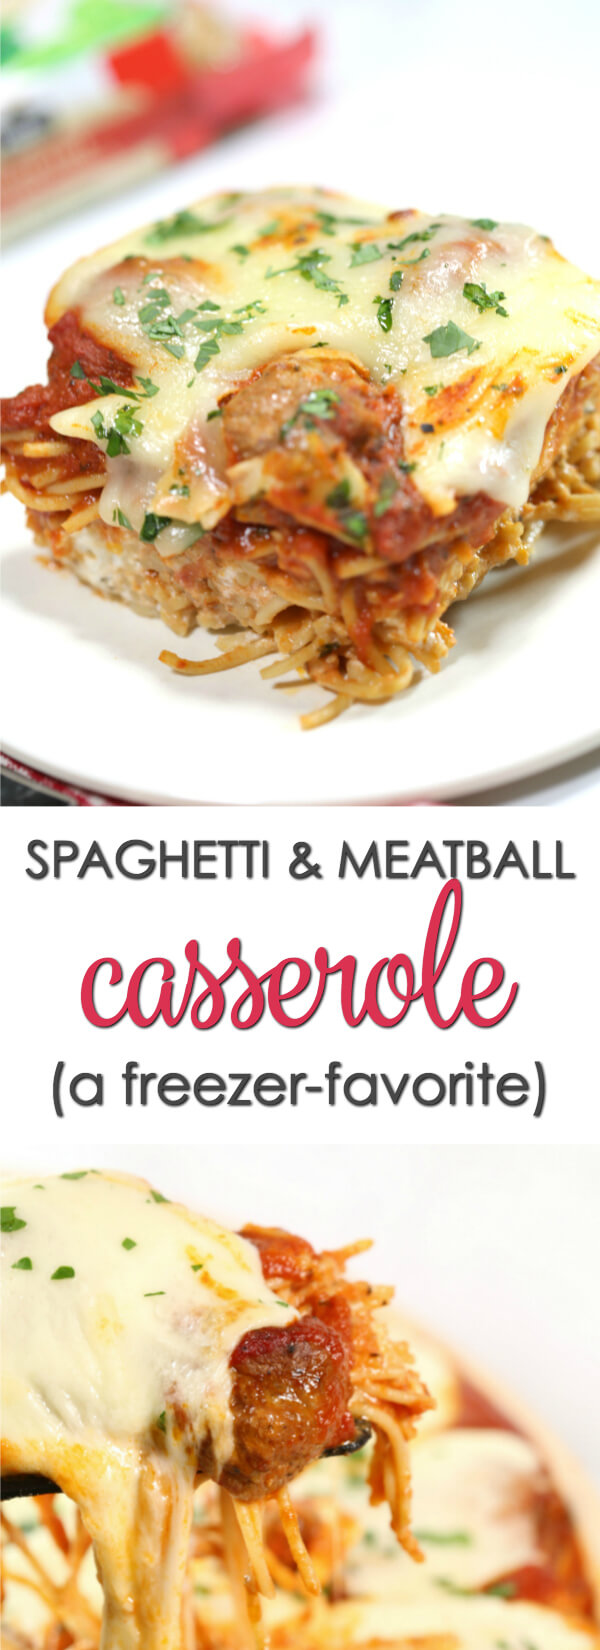 This freezer friendly baked Spaghetti Casserole with meatballs is a delicious freezer friendly recipe the whole family loves.  It's quick and easy to make and can be easily halved or doubled based on your family size.  #recipe #itisakeeper #casserole #freezermeal #freezerfriendly #makeahead #pasta #meatballs #easyrecipe #kidfriendly